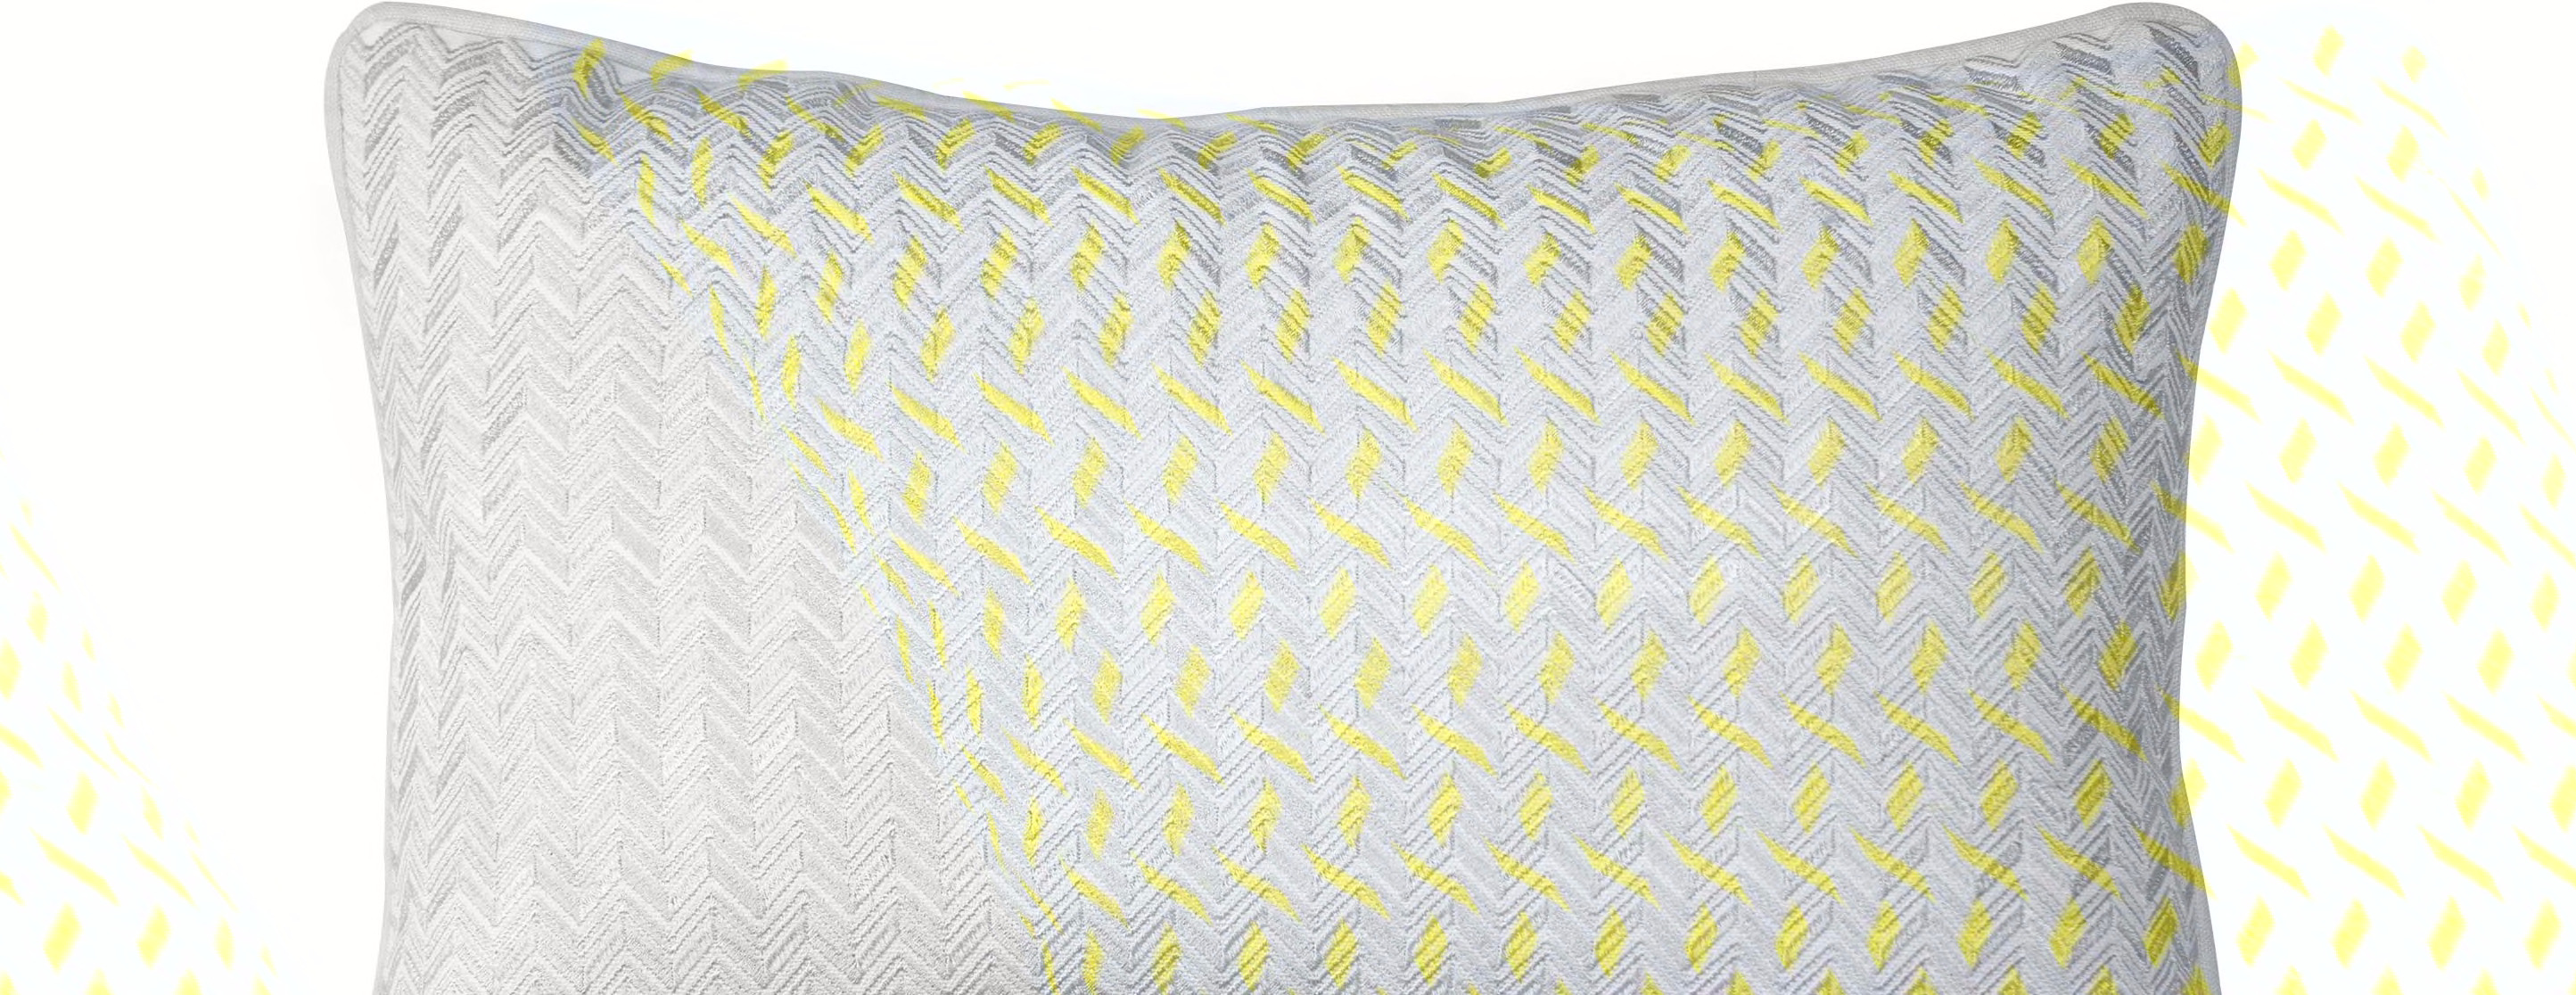 Sanremo Embroidered Cushion 30 x 45cm Grey and Yellow